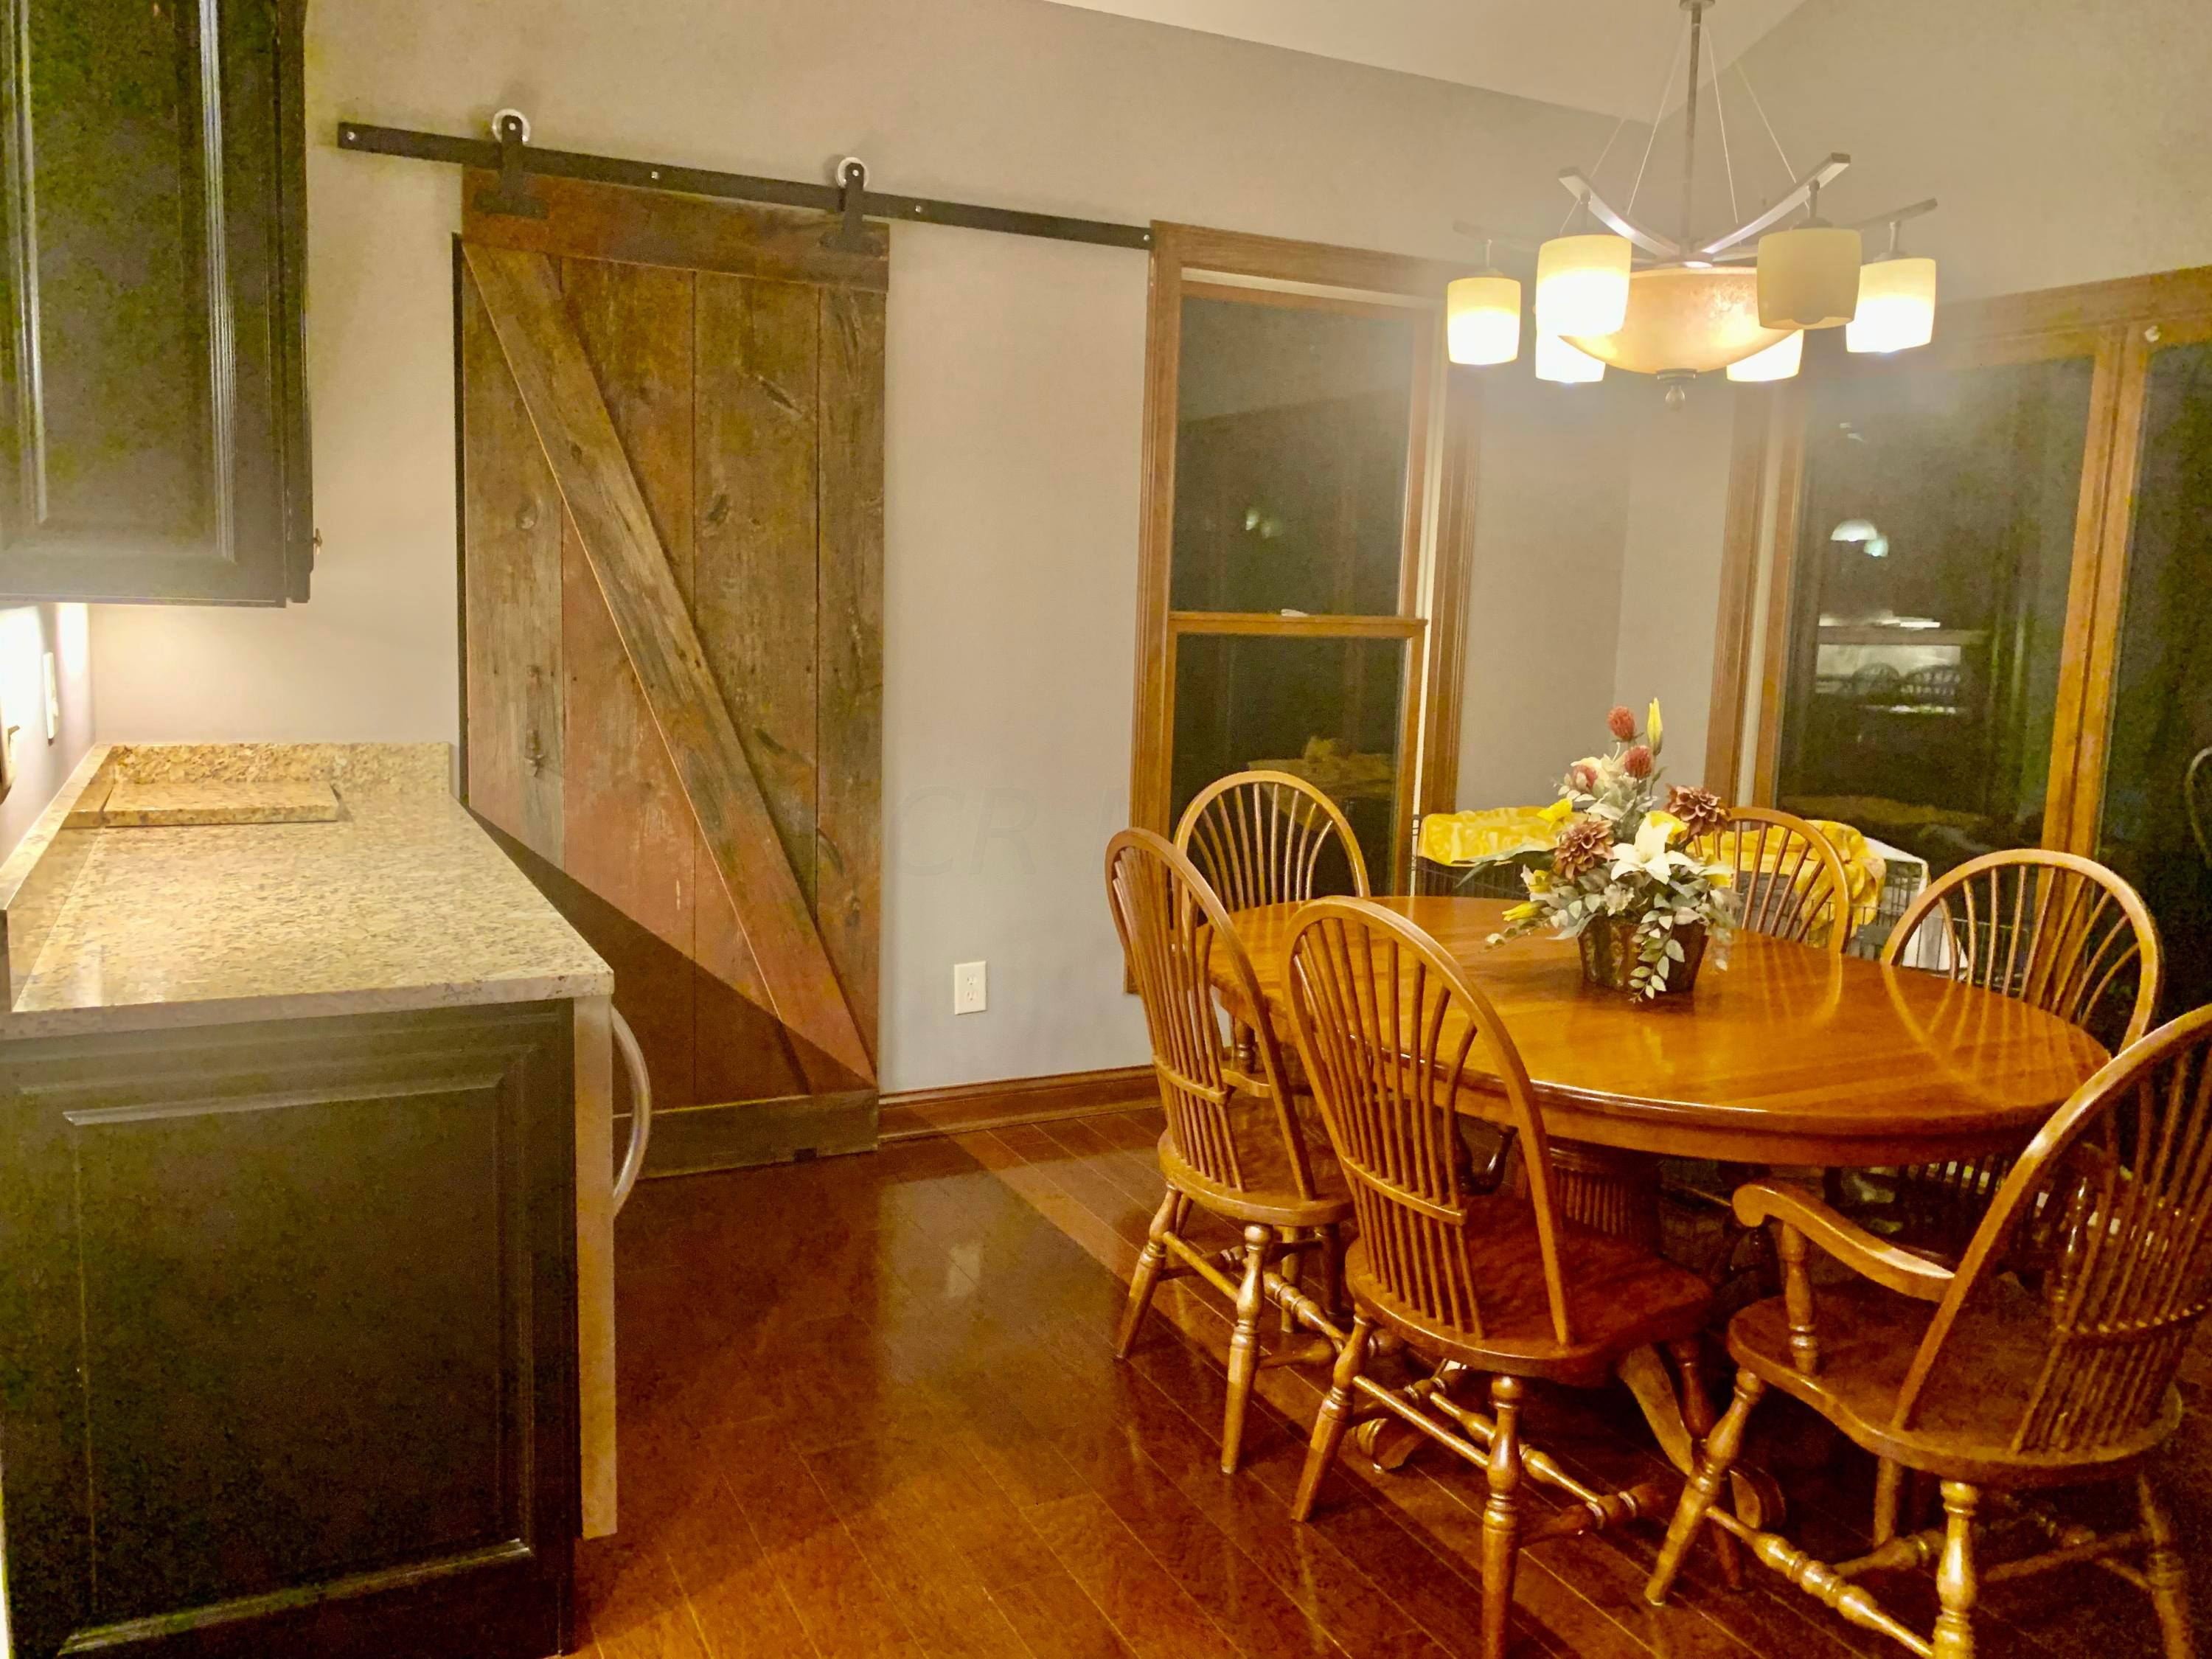 ACTUAL Barn Door is ENTRY to LAUNDRY Rm